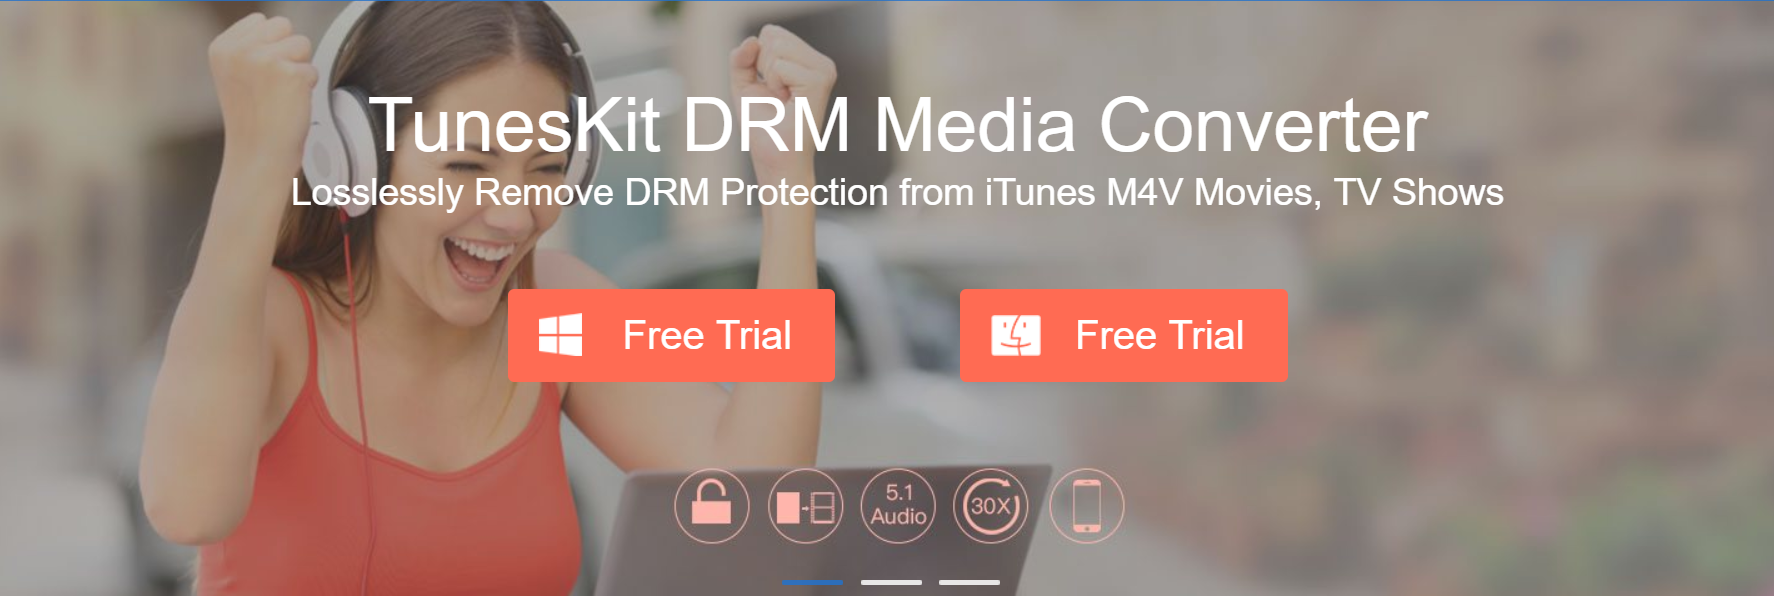 Tuneskit DRM Media Converter for Windows Review